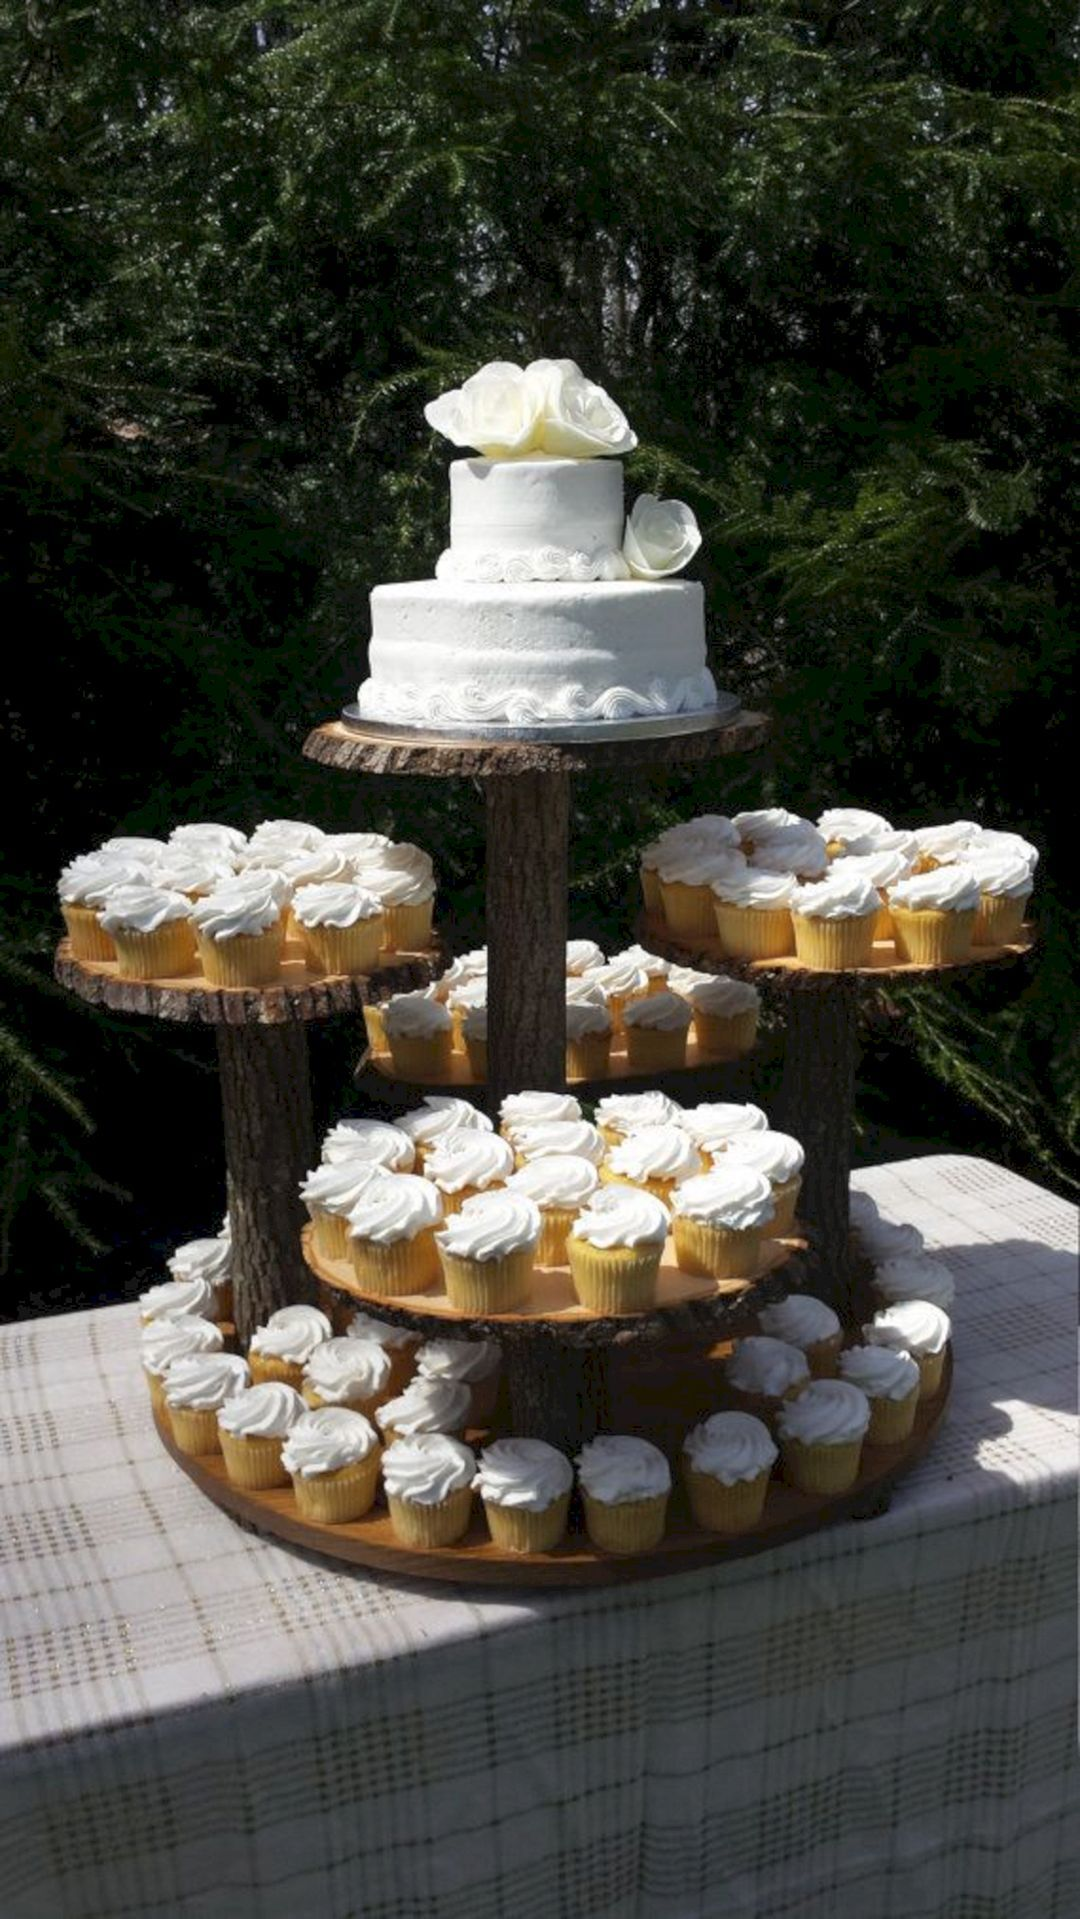 Best rustic cupcake display for wedding cake inspirations